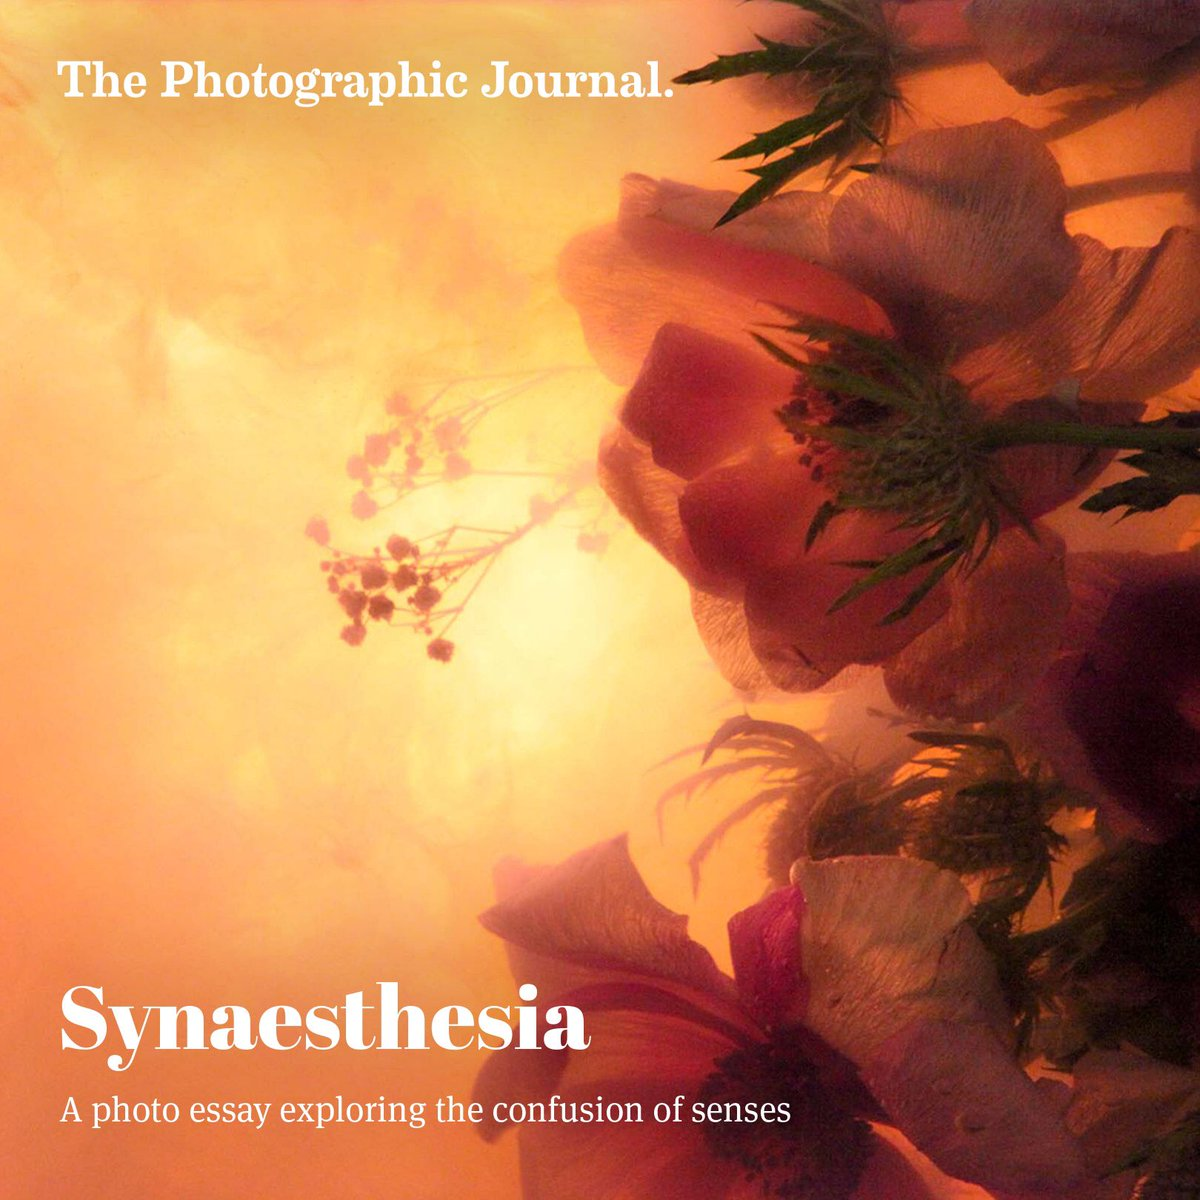 photographic journal tpj twitter take a look at our new essay from ashley garner on the site now thephotographicjournal com essays synaesthesia pic com 6qd4qj6kdi